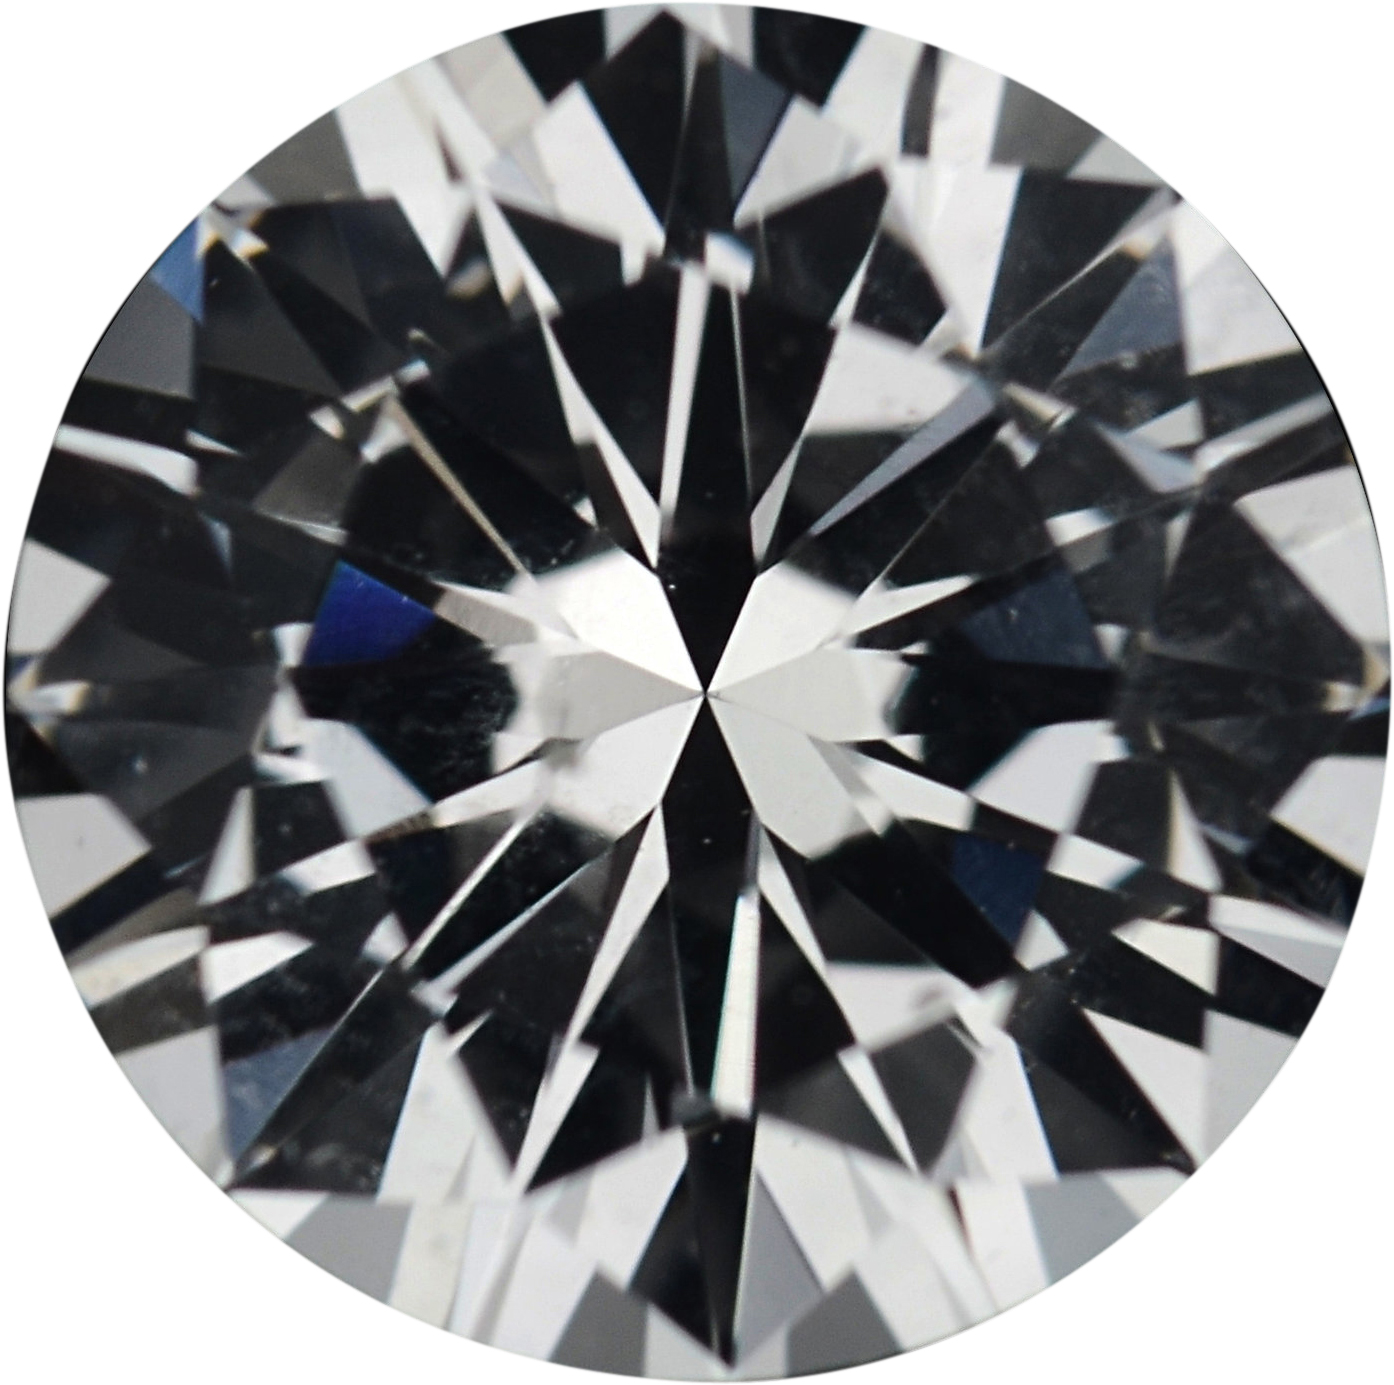 1.3 carats White Loose Sapphire Gemstone in Round Cut, 6.7 mm